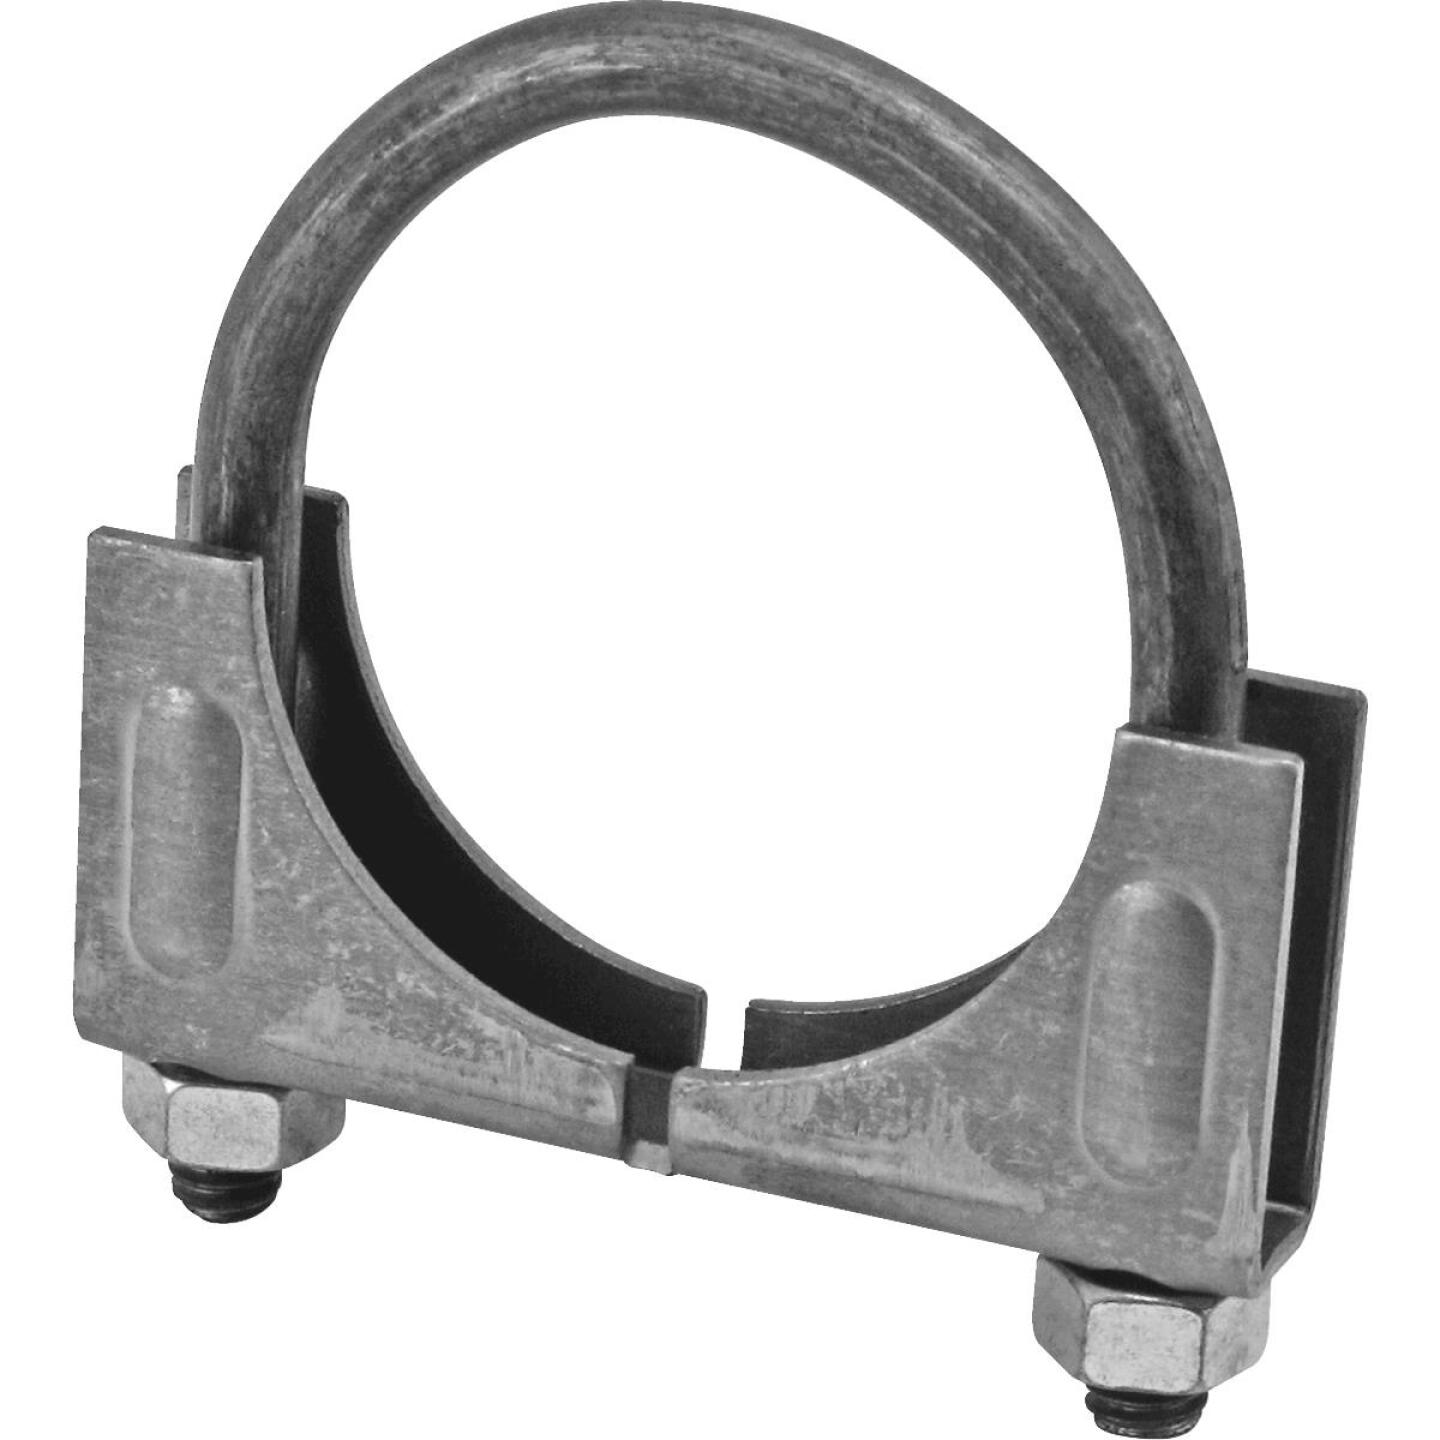 "Victor Saddle 1-7/8"" 13-gauge Steel Muffler Clamp Image 1"